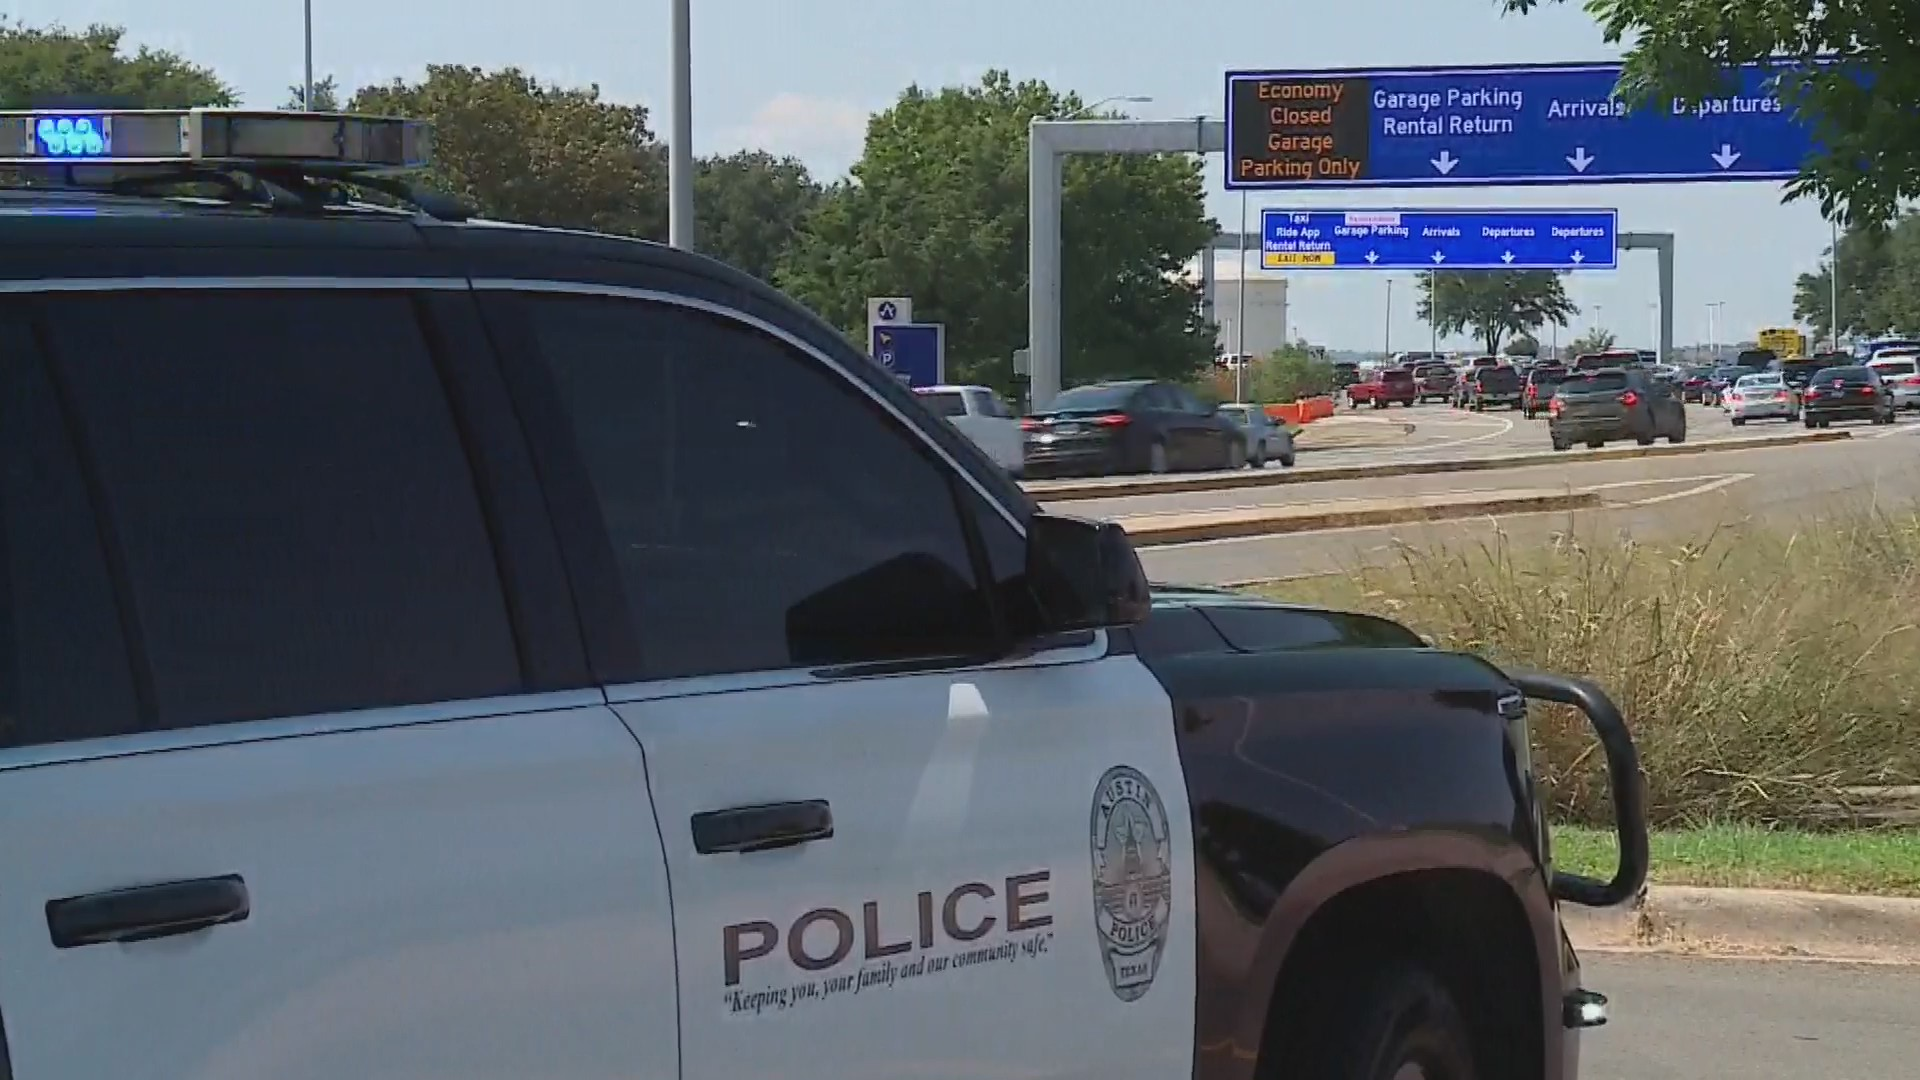 Law enforcement investigated a suspicious package at the Austin Bergstrom International Airport Sept. 18, 2020 (KXAN Photo)